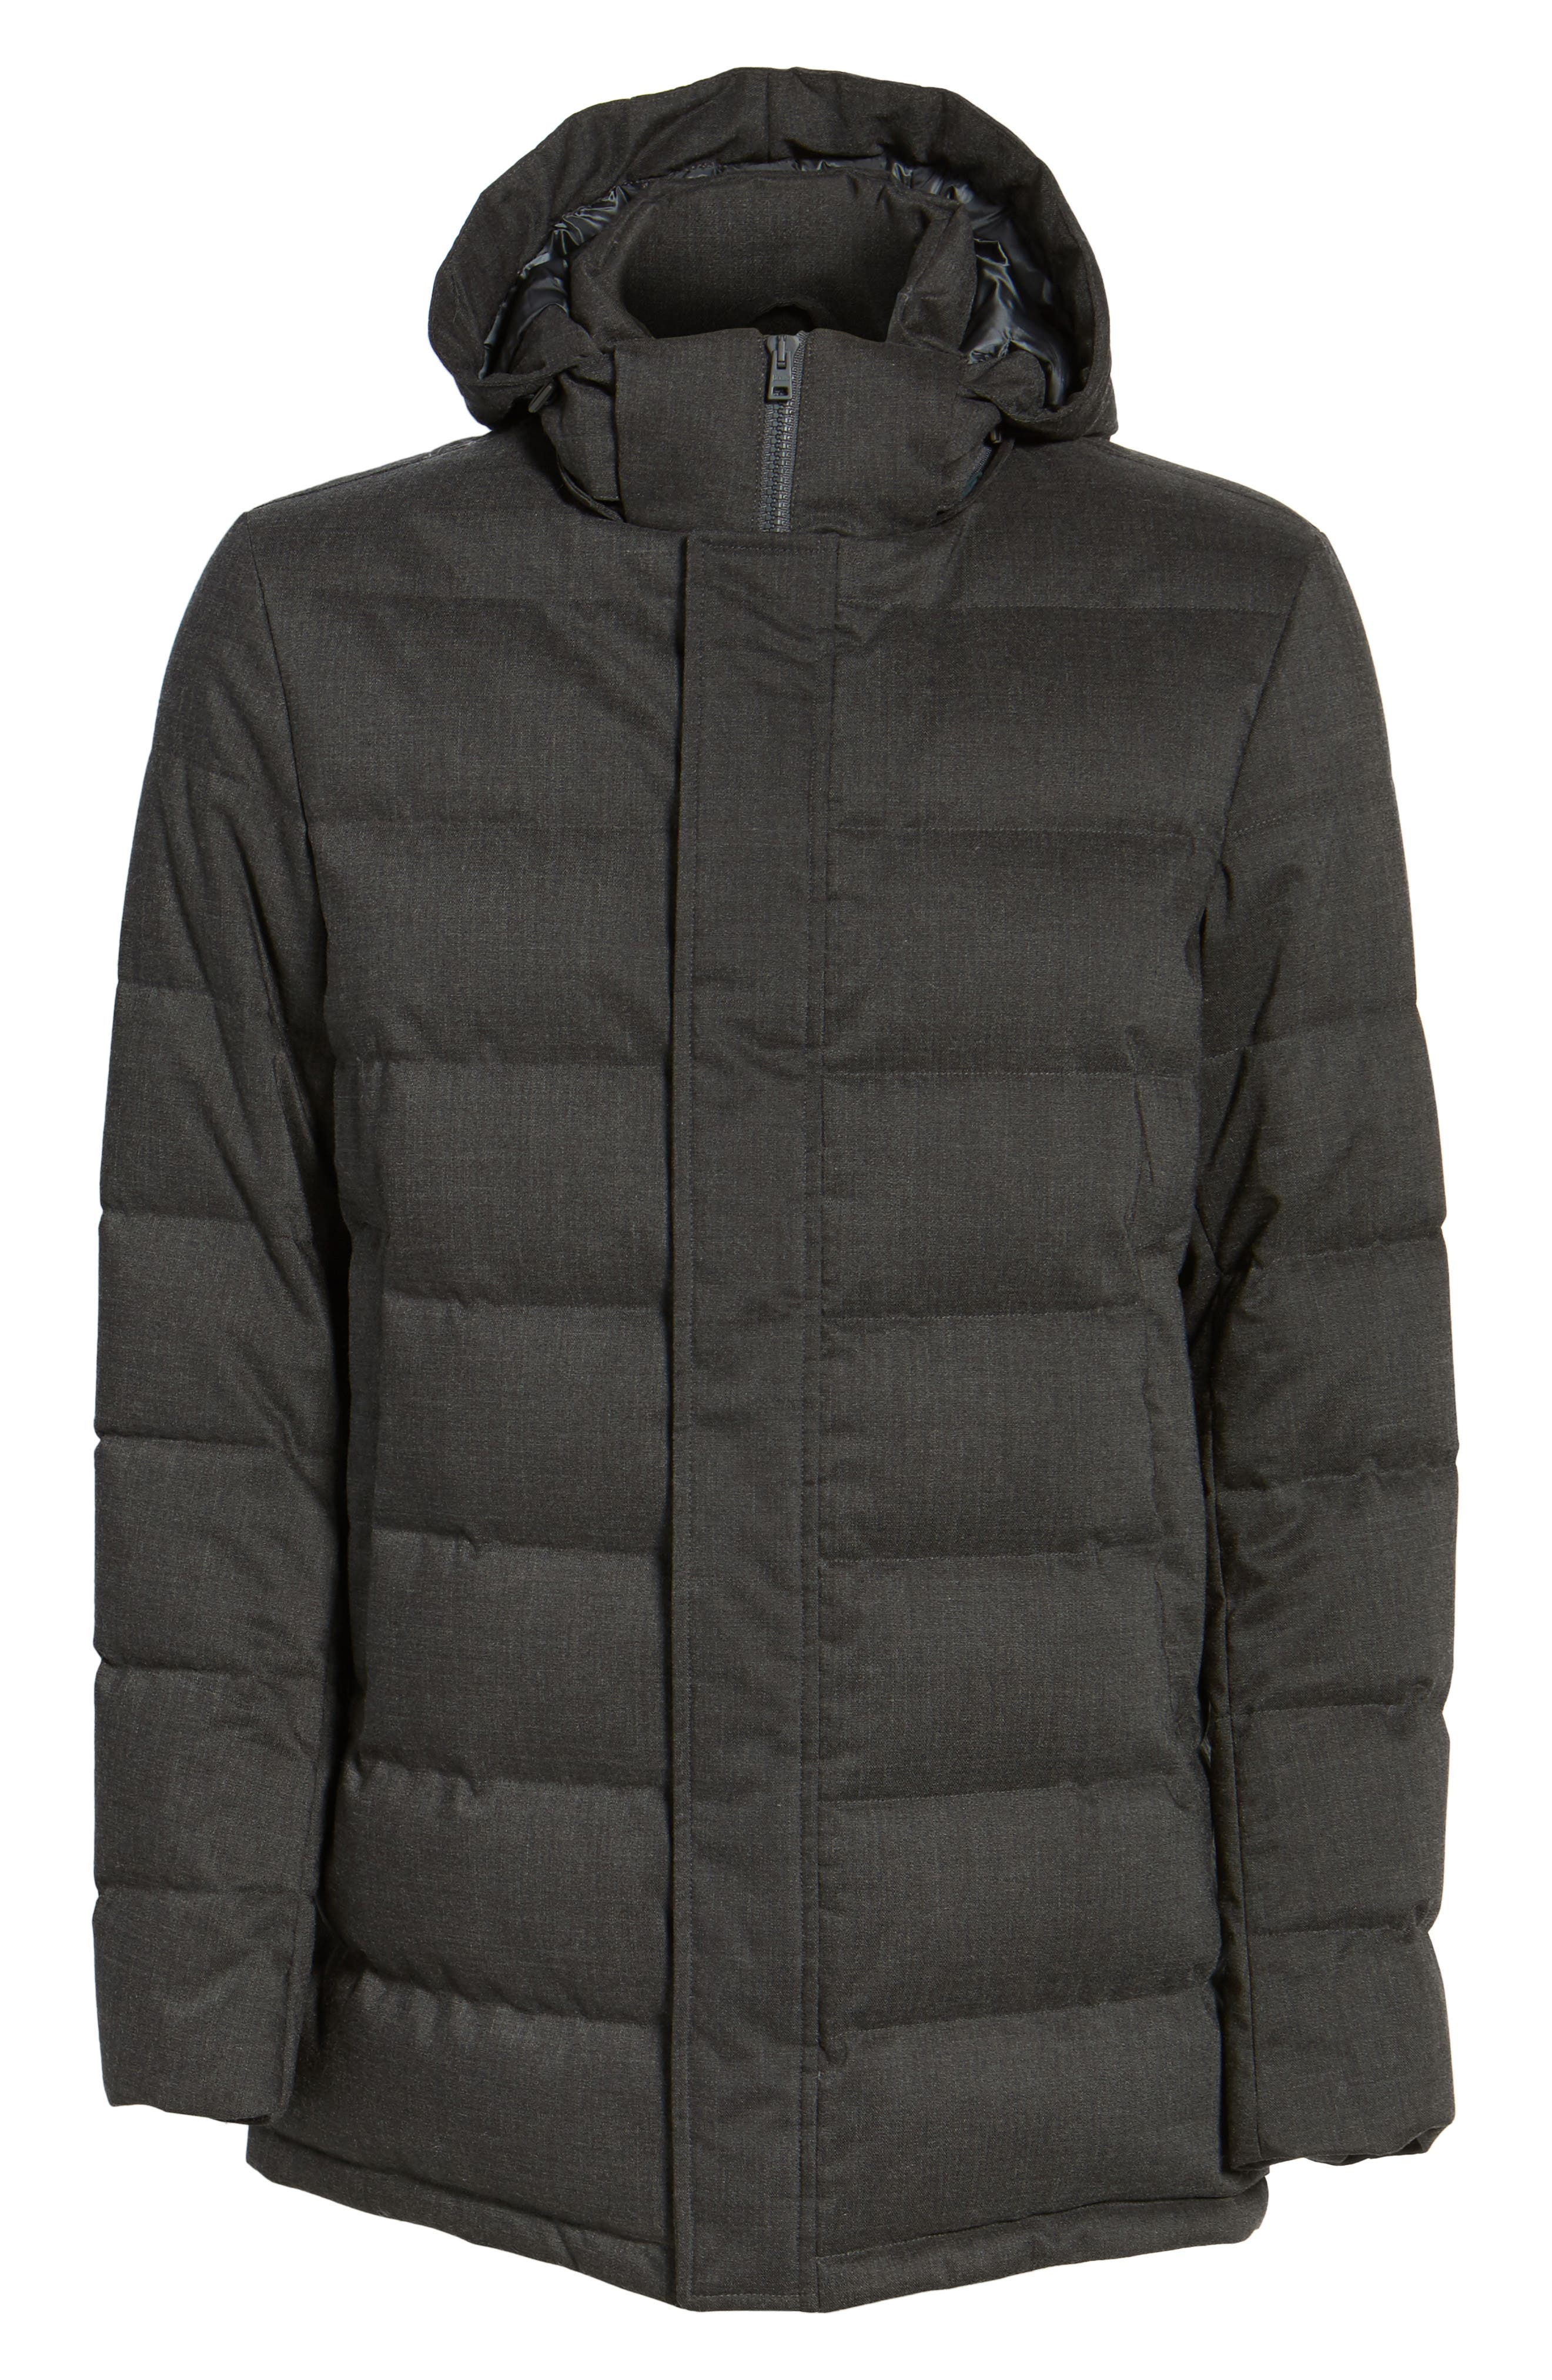 Techno Quilted Waterproof Down Jacket,                             Alternate thumbnail 5, color,                             050